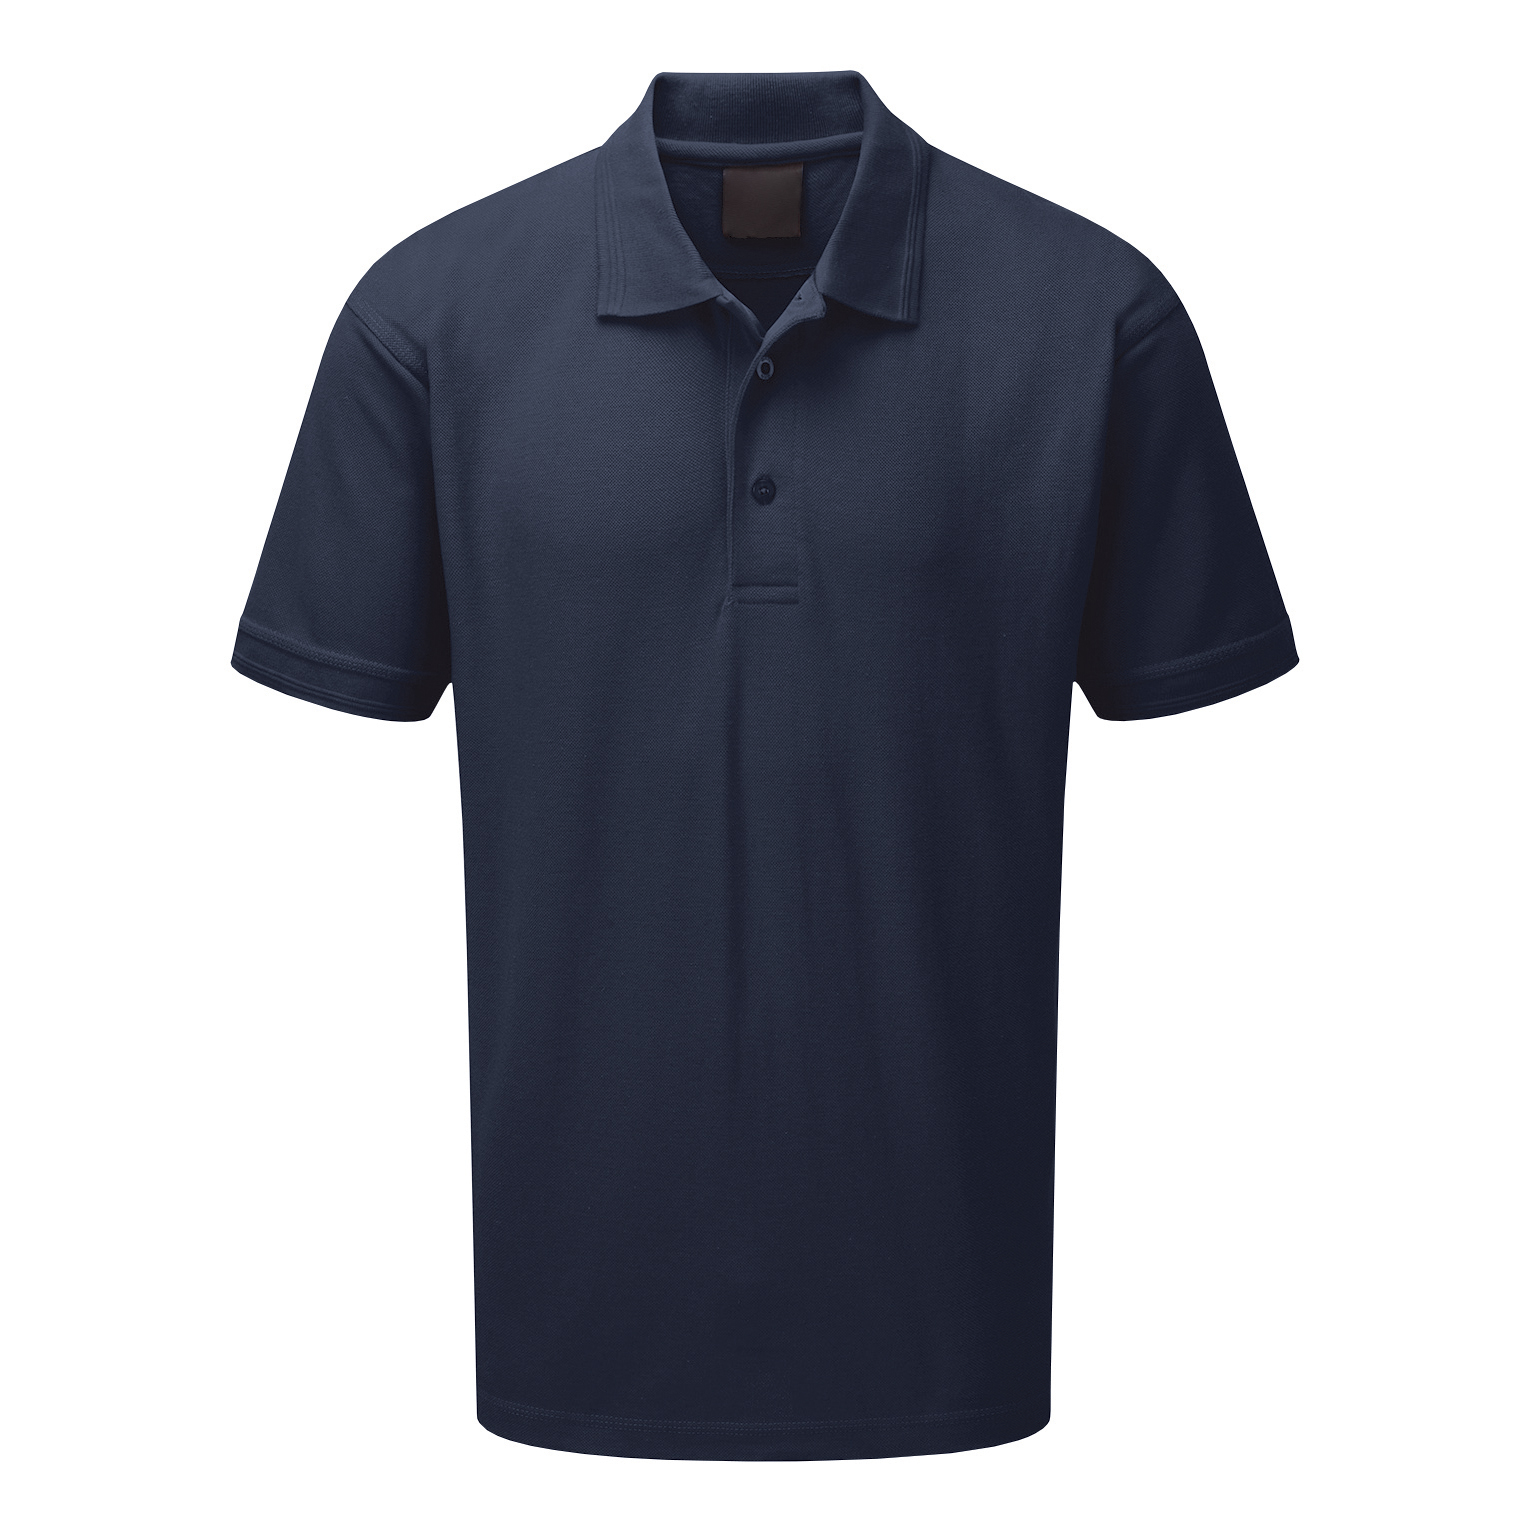 Premium Polo Shirt Triple Button 220gsm Polycotton XS Navy Ref CLPKSNXS *Approx 3 Day Leadtime*